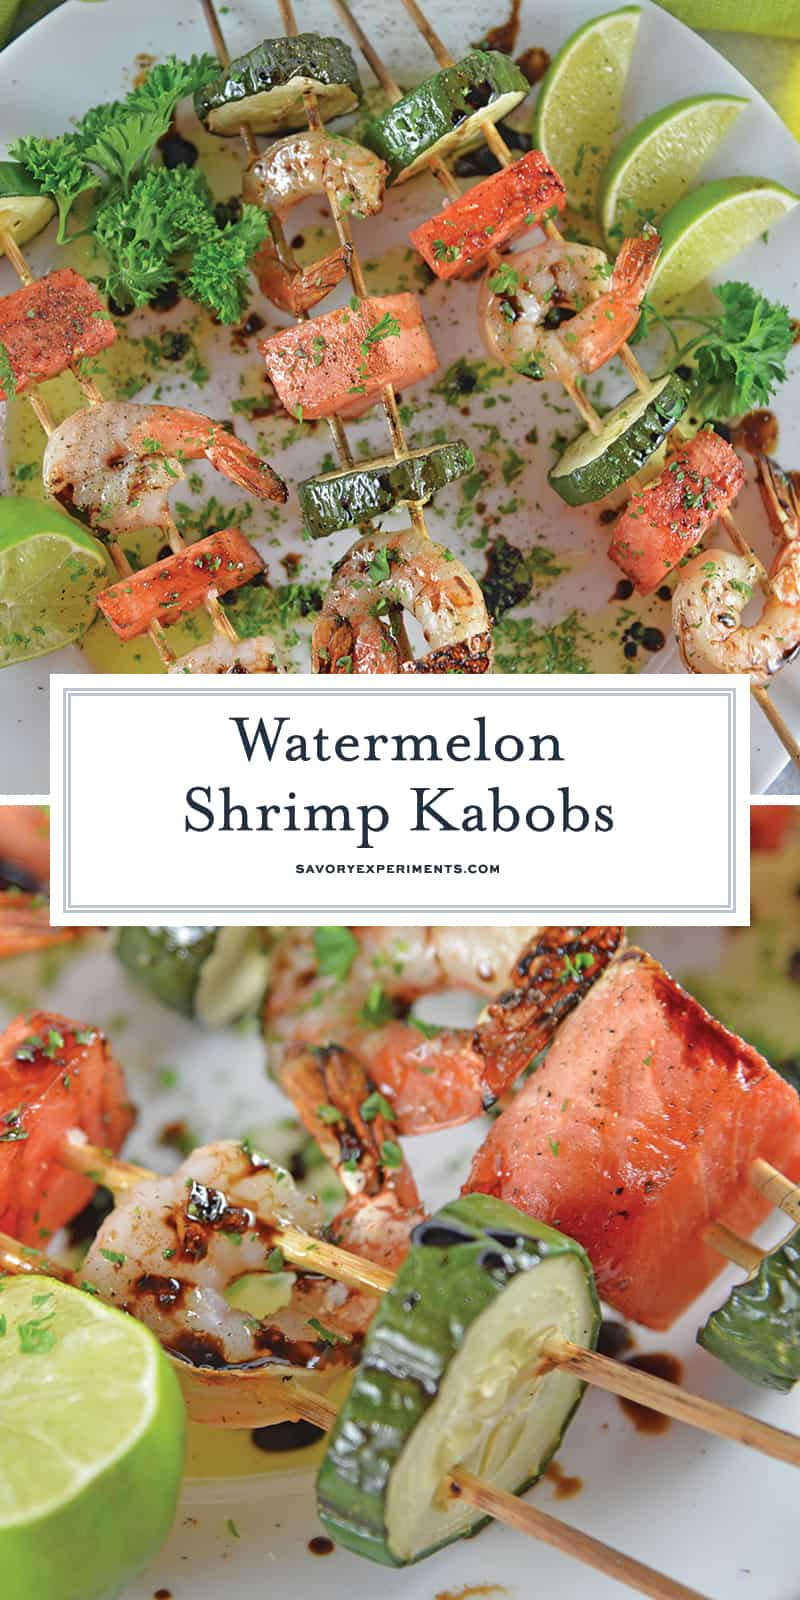 Watermelon Shrimp Kabobs combine grilled shrimp with grilled watermelon with a sweet balsamic reduction and zesty lime. A healthy kabob recipe on the grill. #grilledwatermelon #kabobrecipes www.savoryexperiments.com